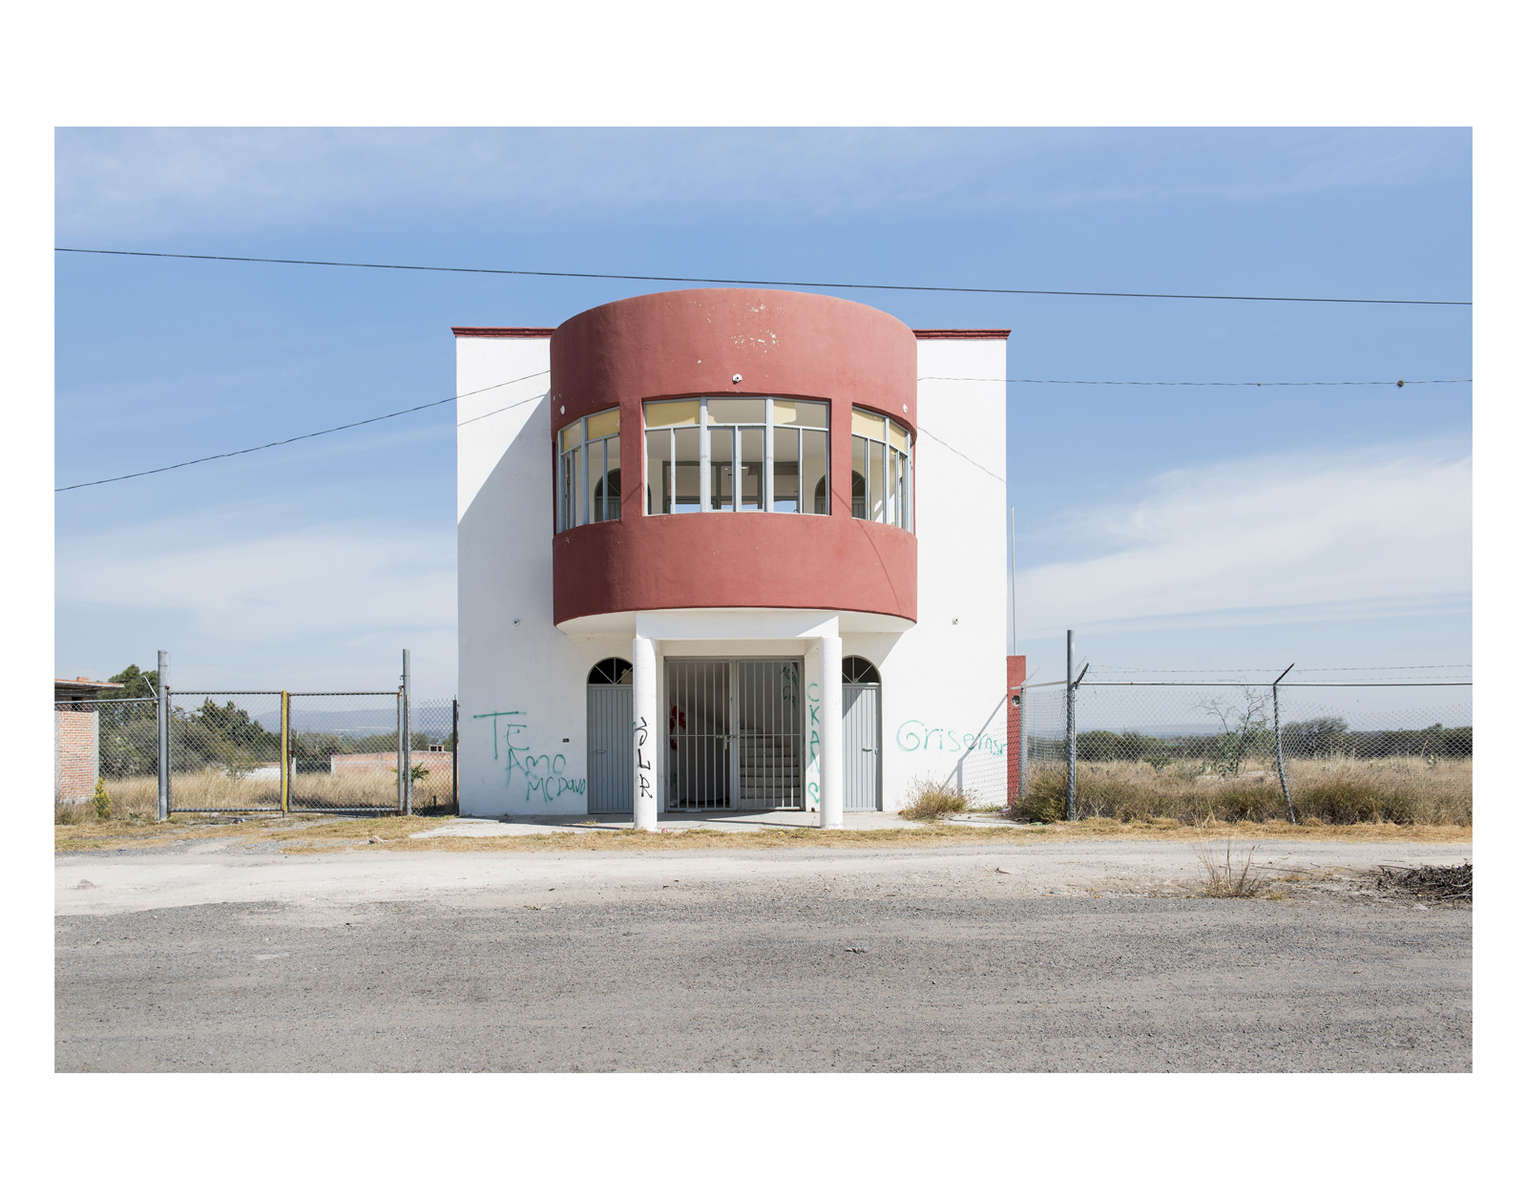 Arquitectura Libre / Free Architecture, roadside structure between Zacatecas and Queretaro. Mexico